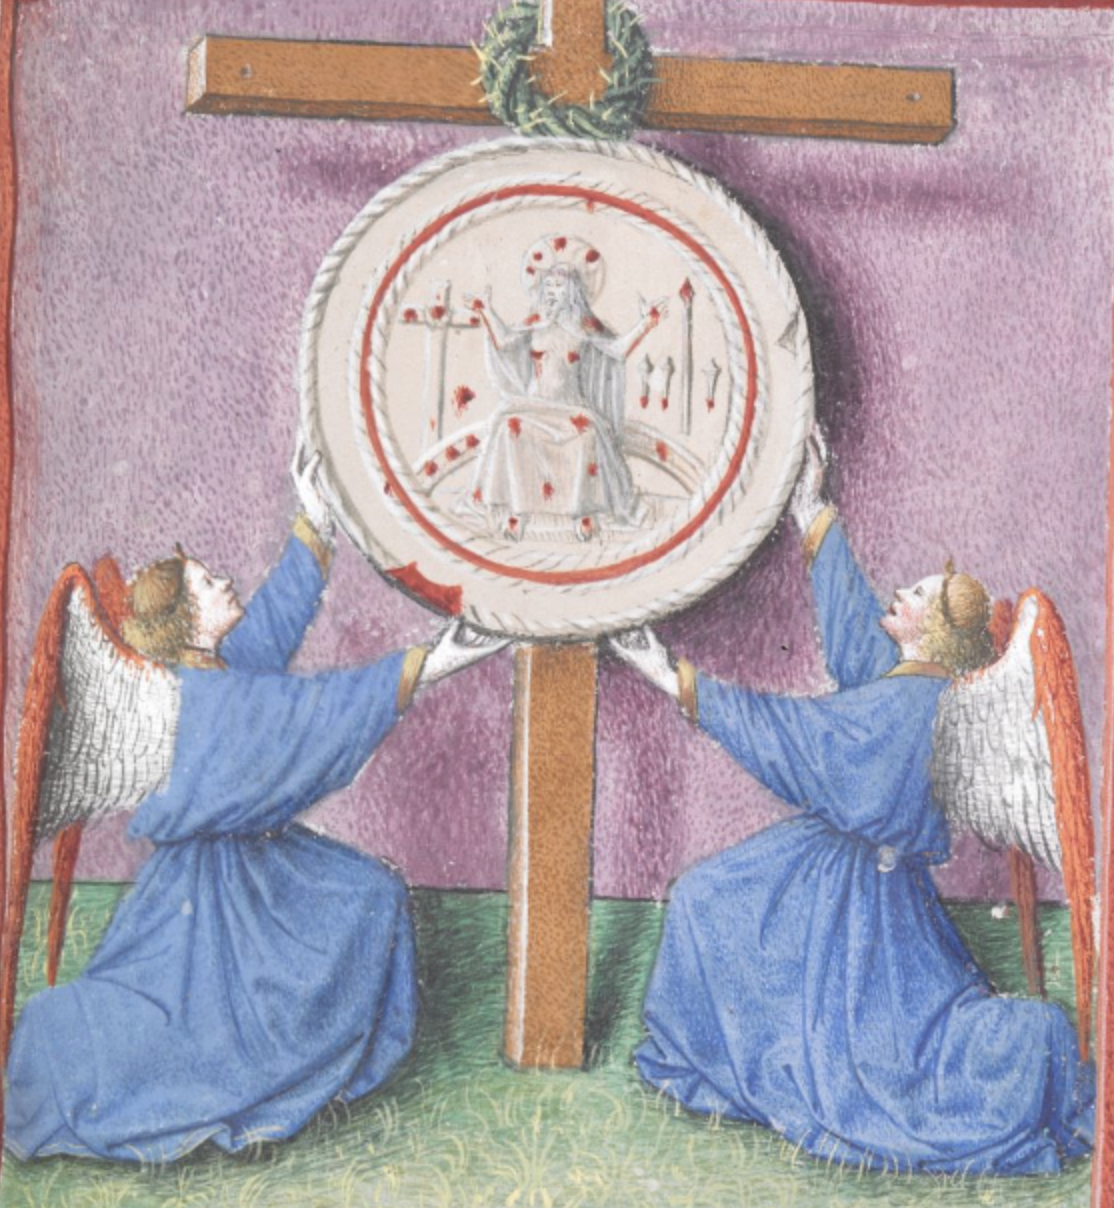 A round disk with blood spots and an image of a figure, all supported by two angels and in front of a cross with a crown of thorns around it.